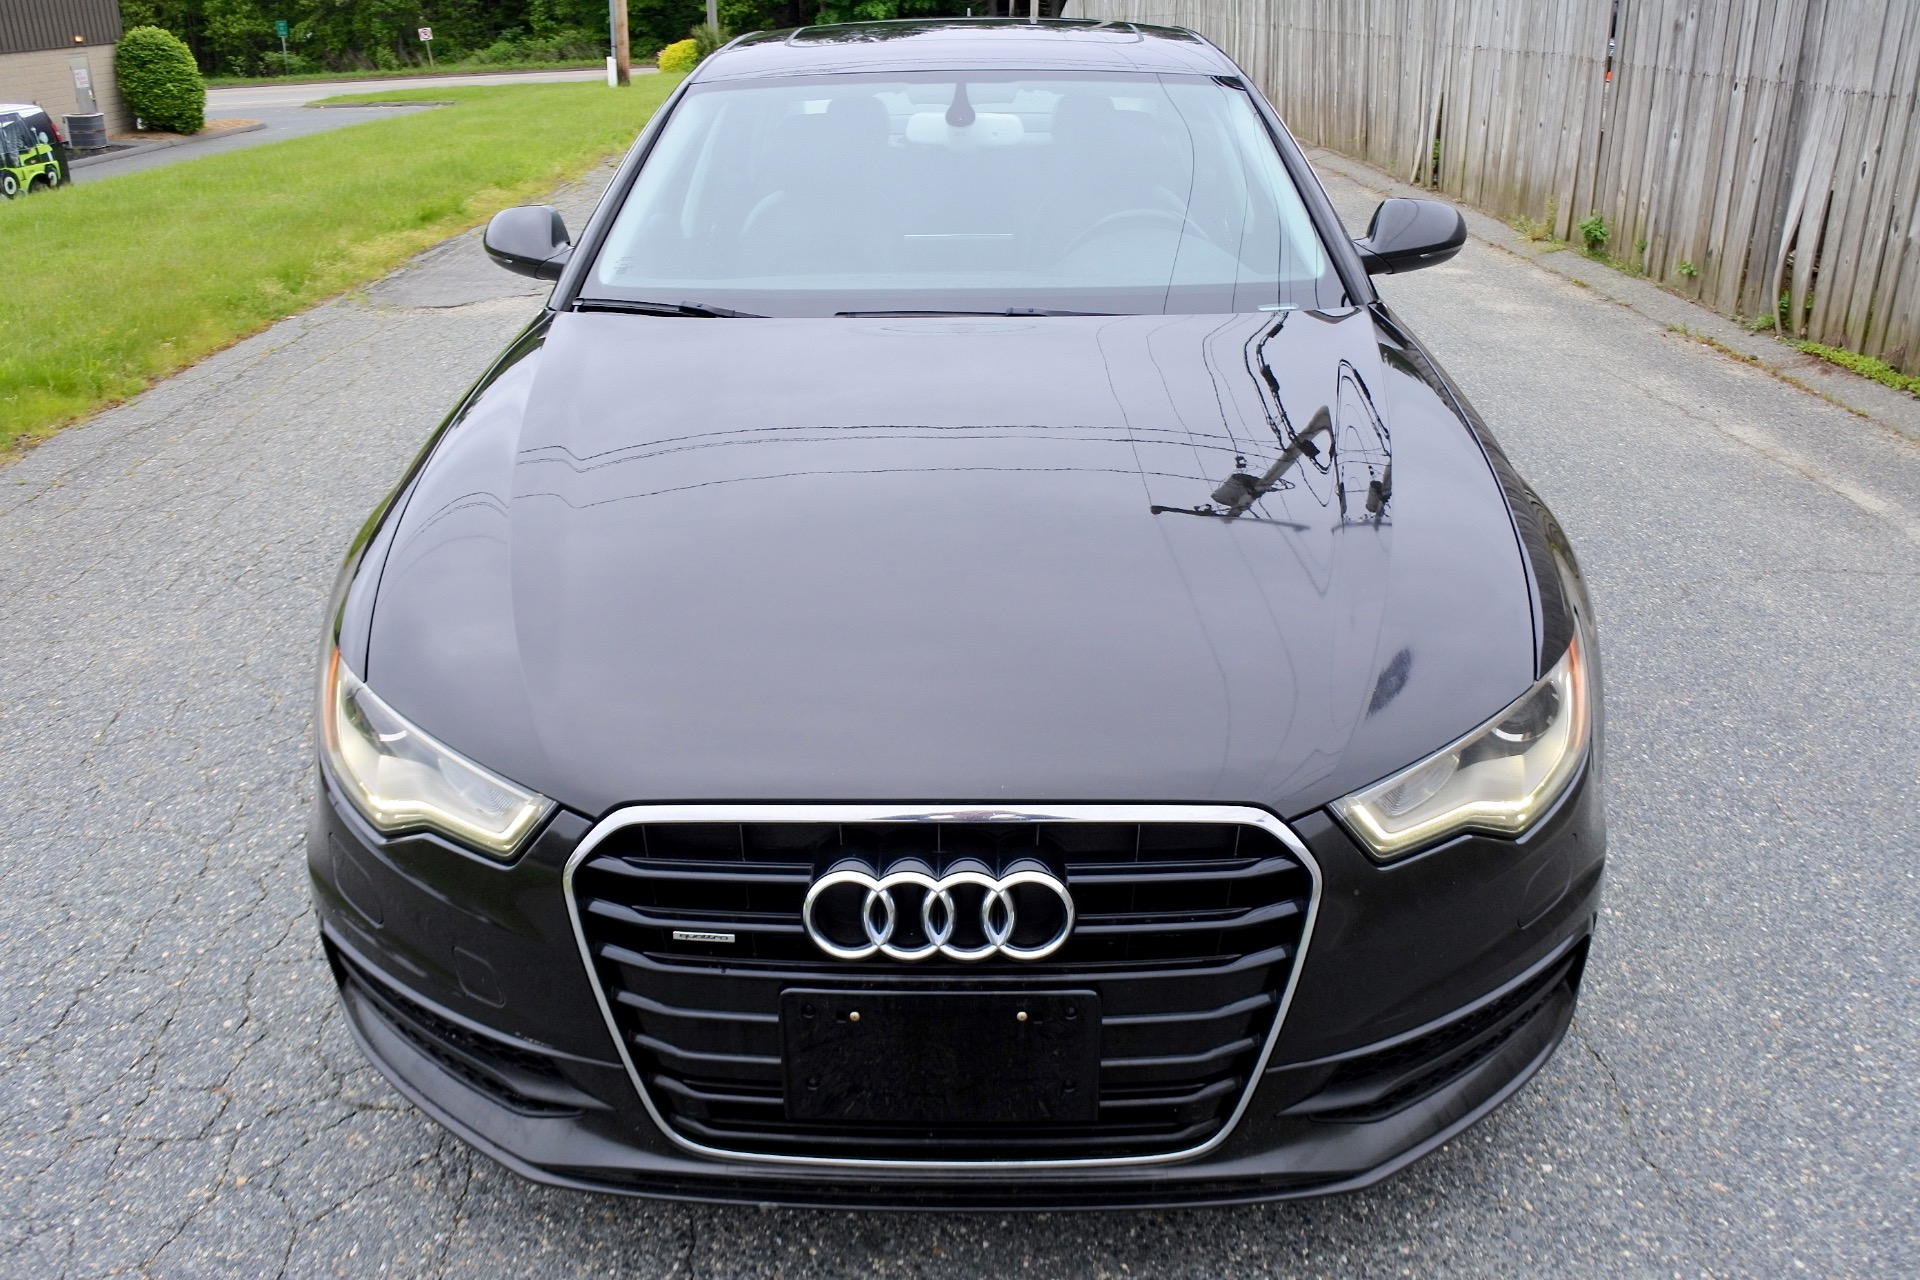 Used 2013 Audi A6 4dr Sdn quattro 3.0T Prestige Used 2013 Audi A6 4dr Sdn quattro 3.0T Prestige for sale  at Metro West Motorcars LLC in Shrewsbury MA 8